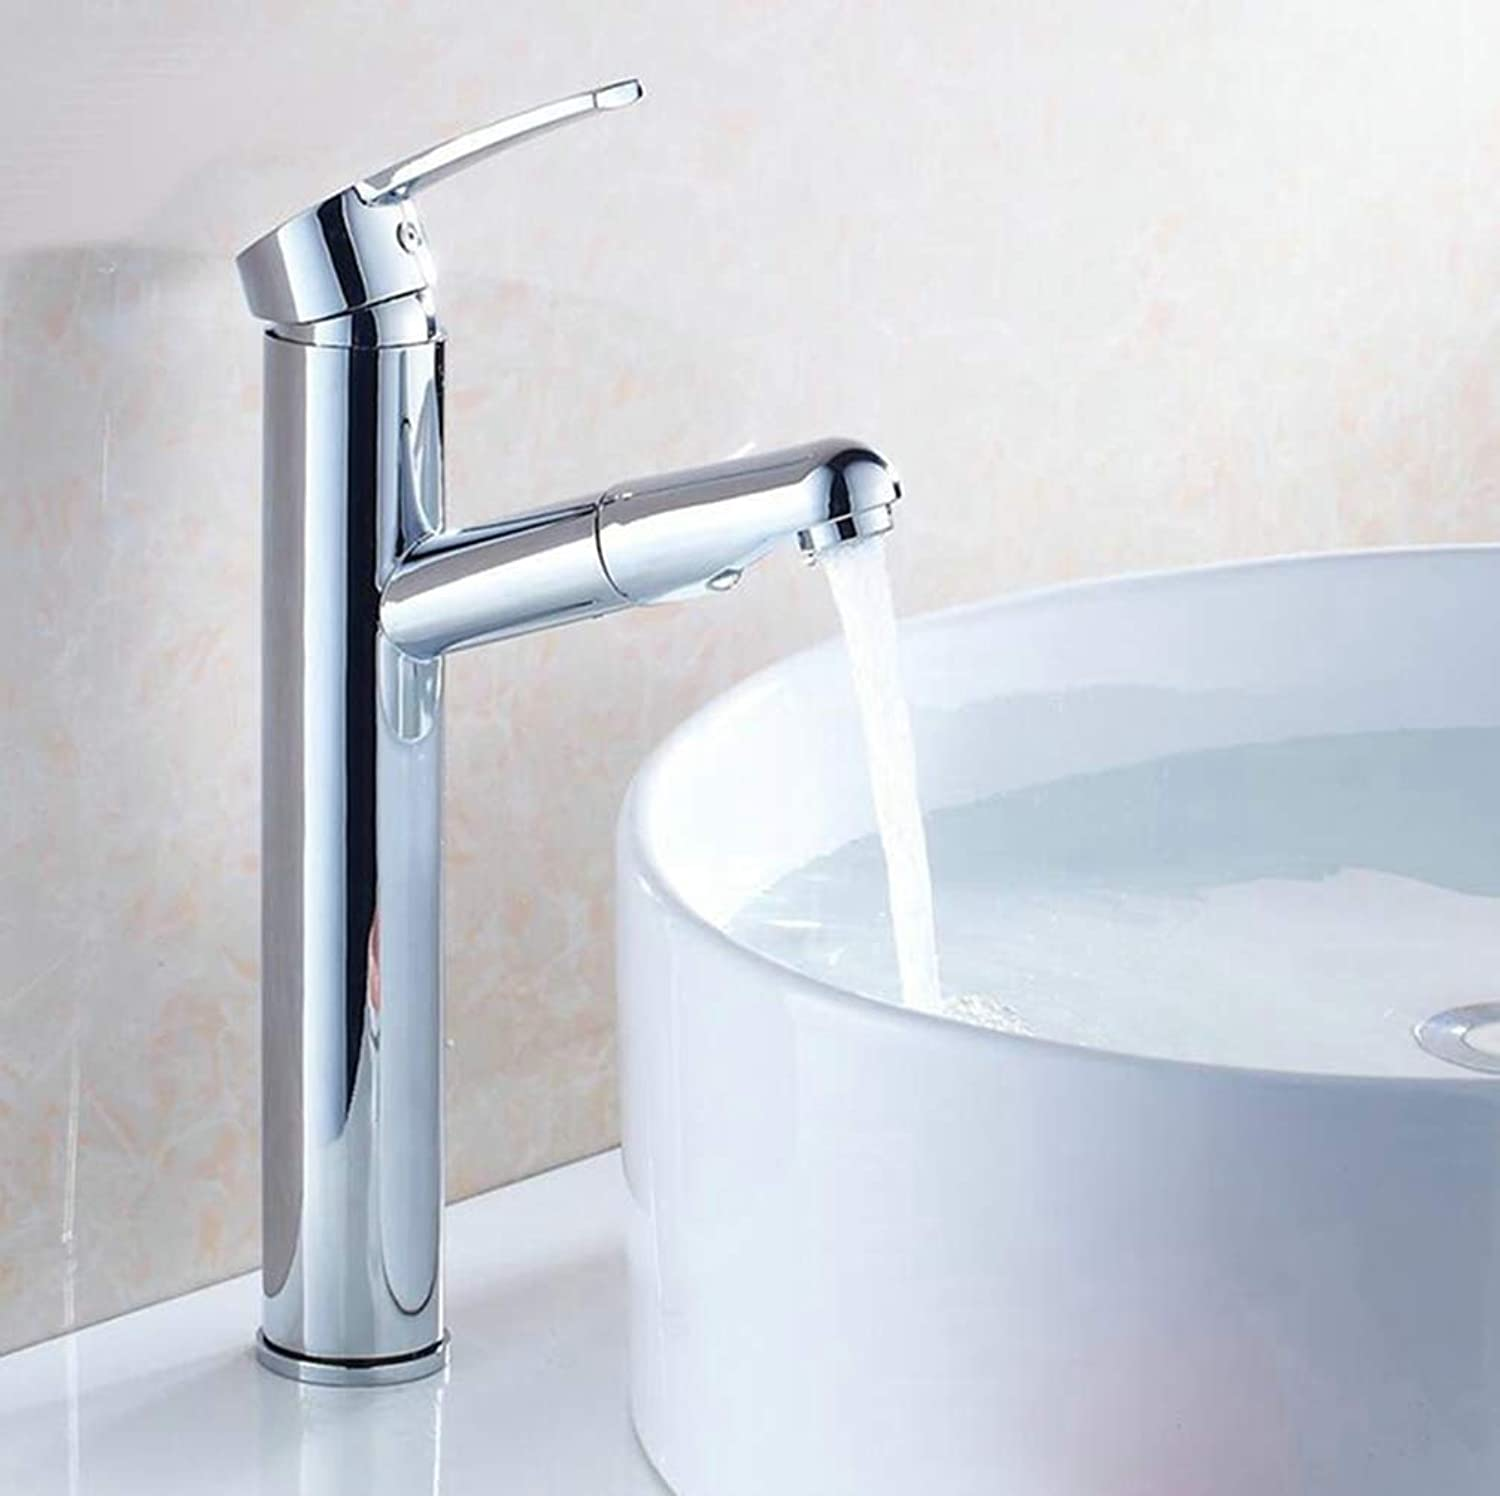 FZHLR Tall Deck Mounted Chrome Polished Finish Pull Out Kitchen & Bathroom Faucet Basin Mixer Tap